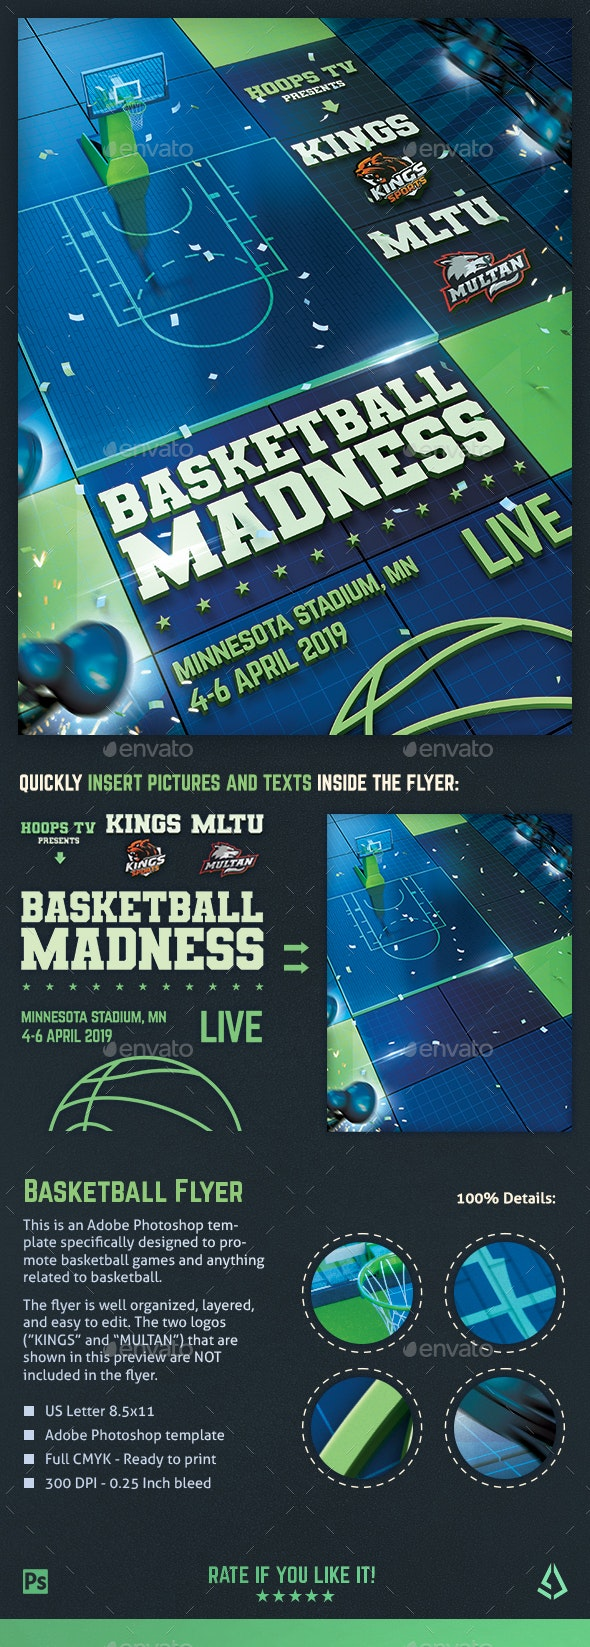 Basketball Madness Flyer College Match Template - Sports Events